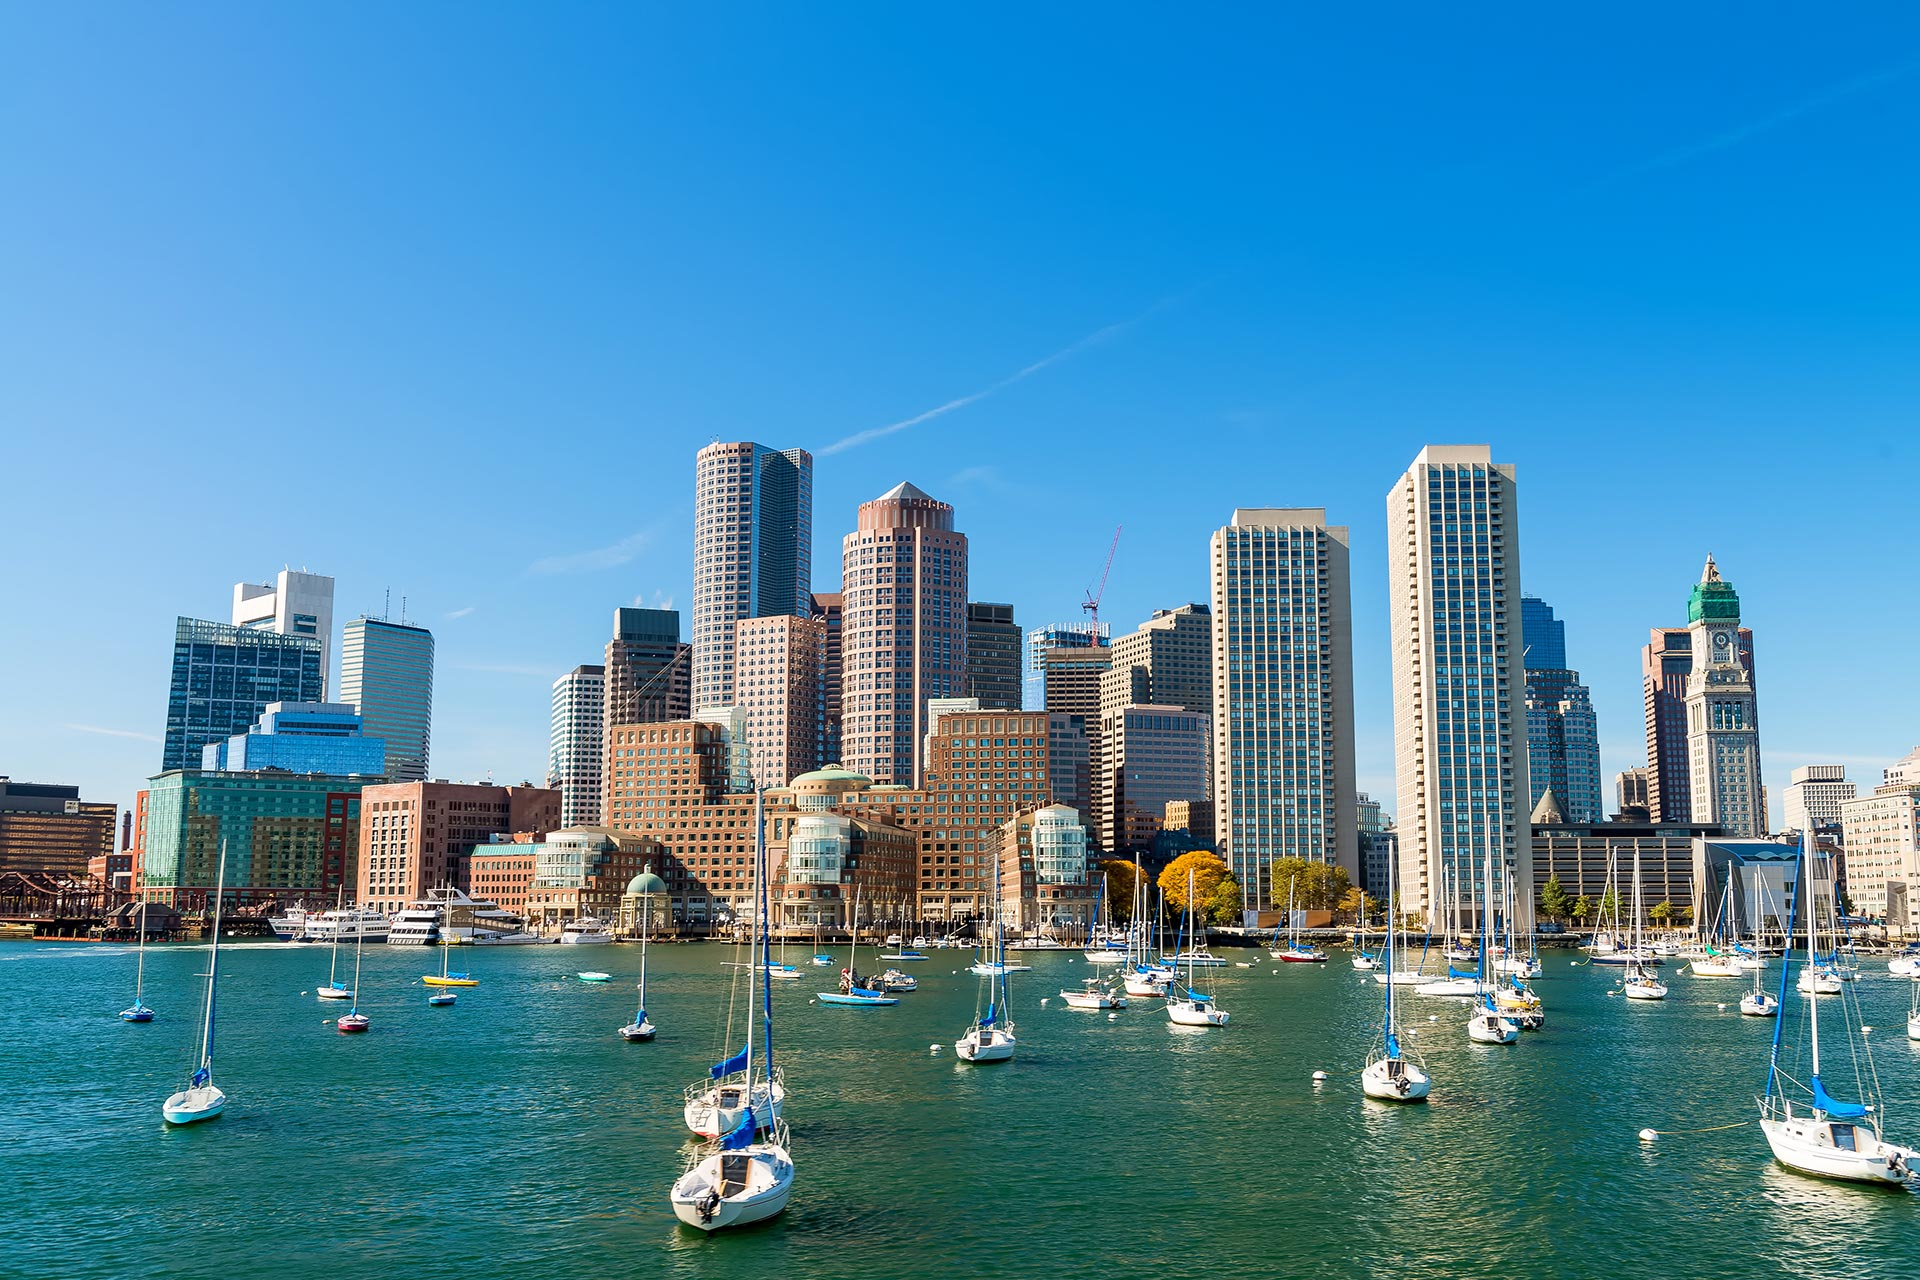 Massachusetts has special considerations for a registered agent.  CT Corporation has experienced professionals who can assist.